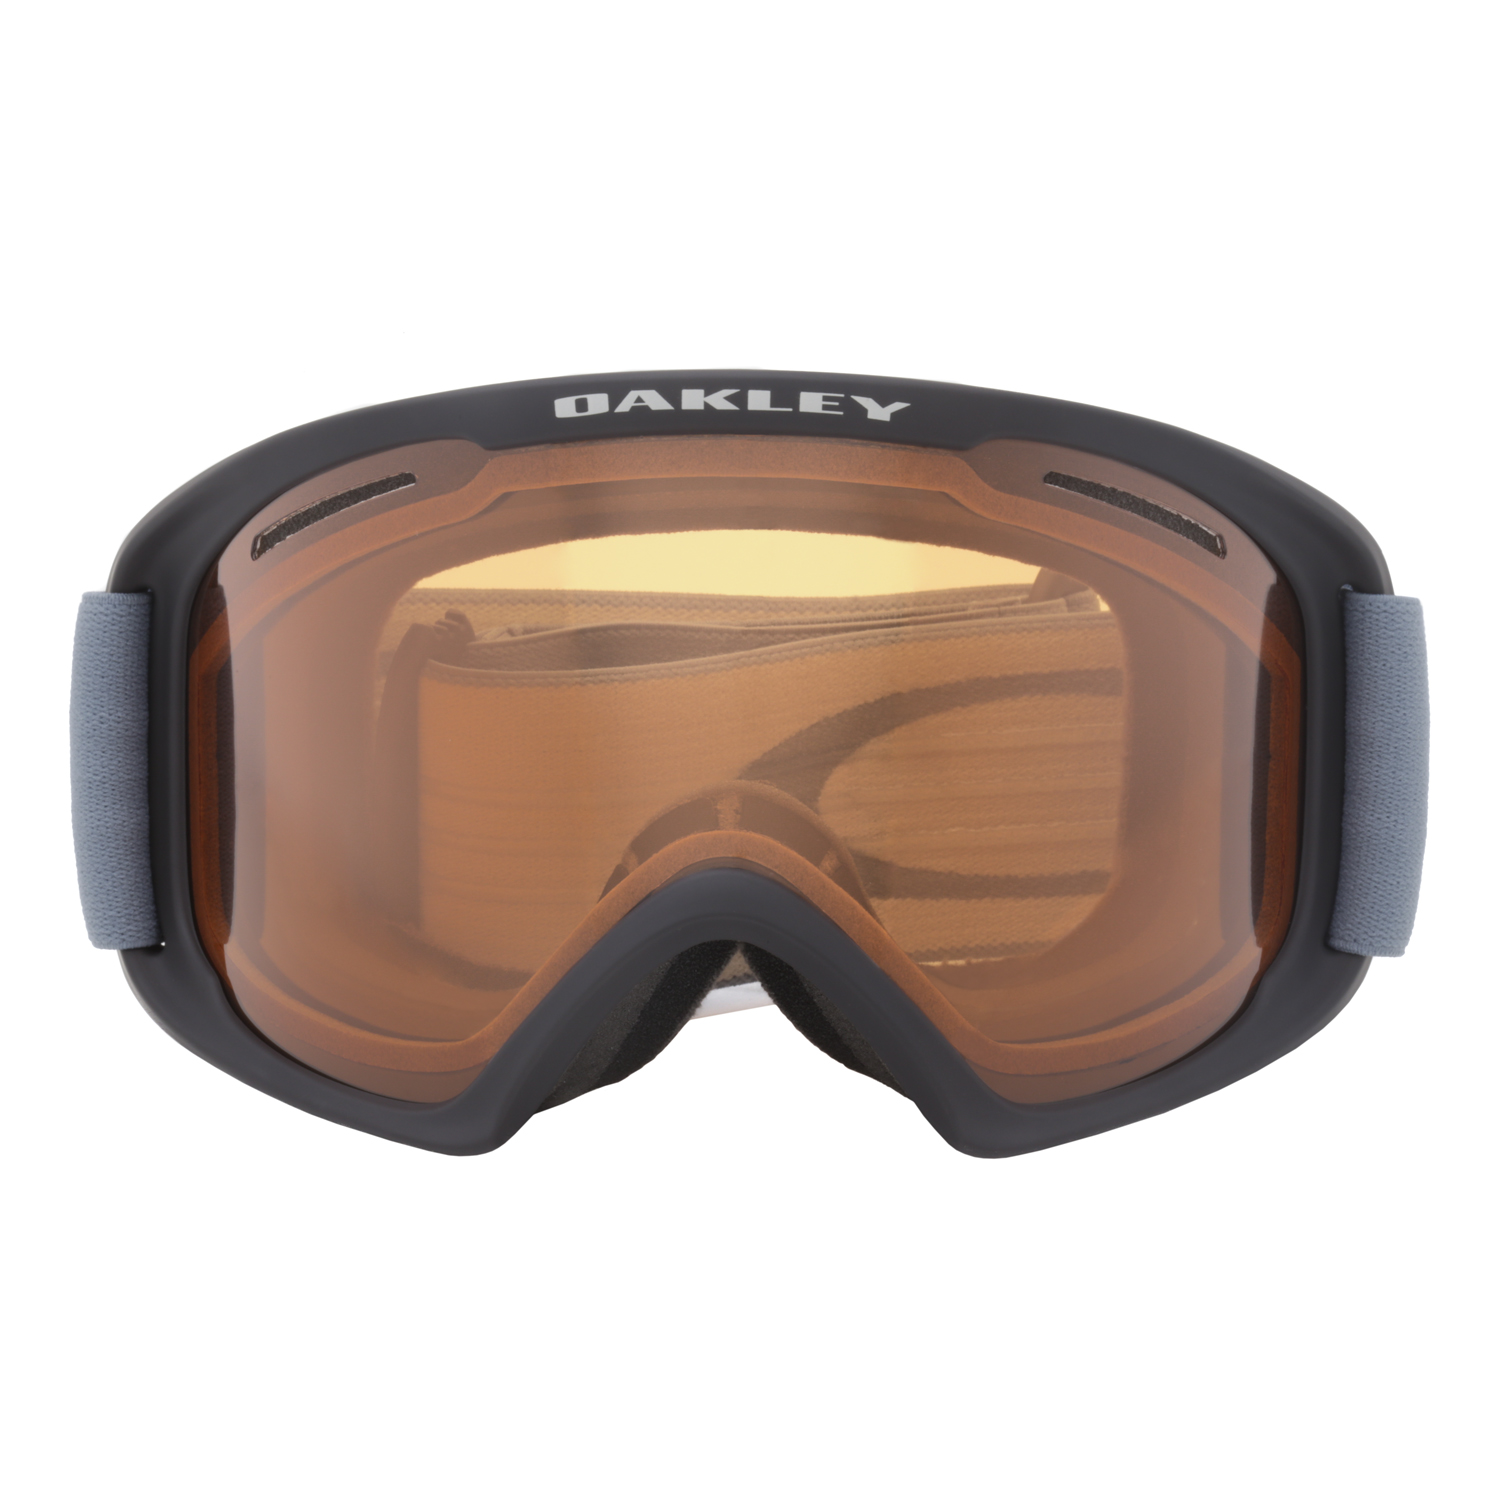 oakley o frame 20 xl snow goggles oo7045 27 black blue persimmon lens